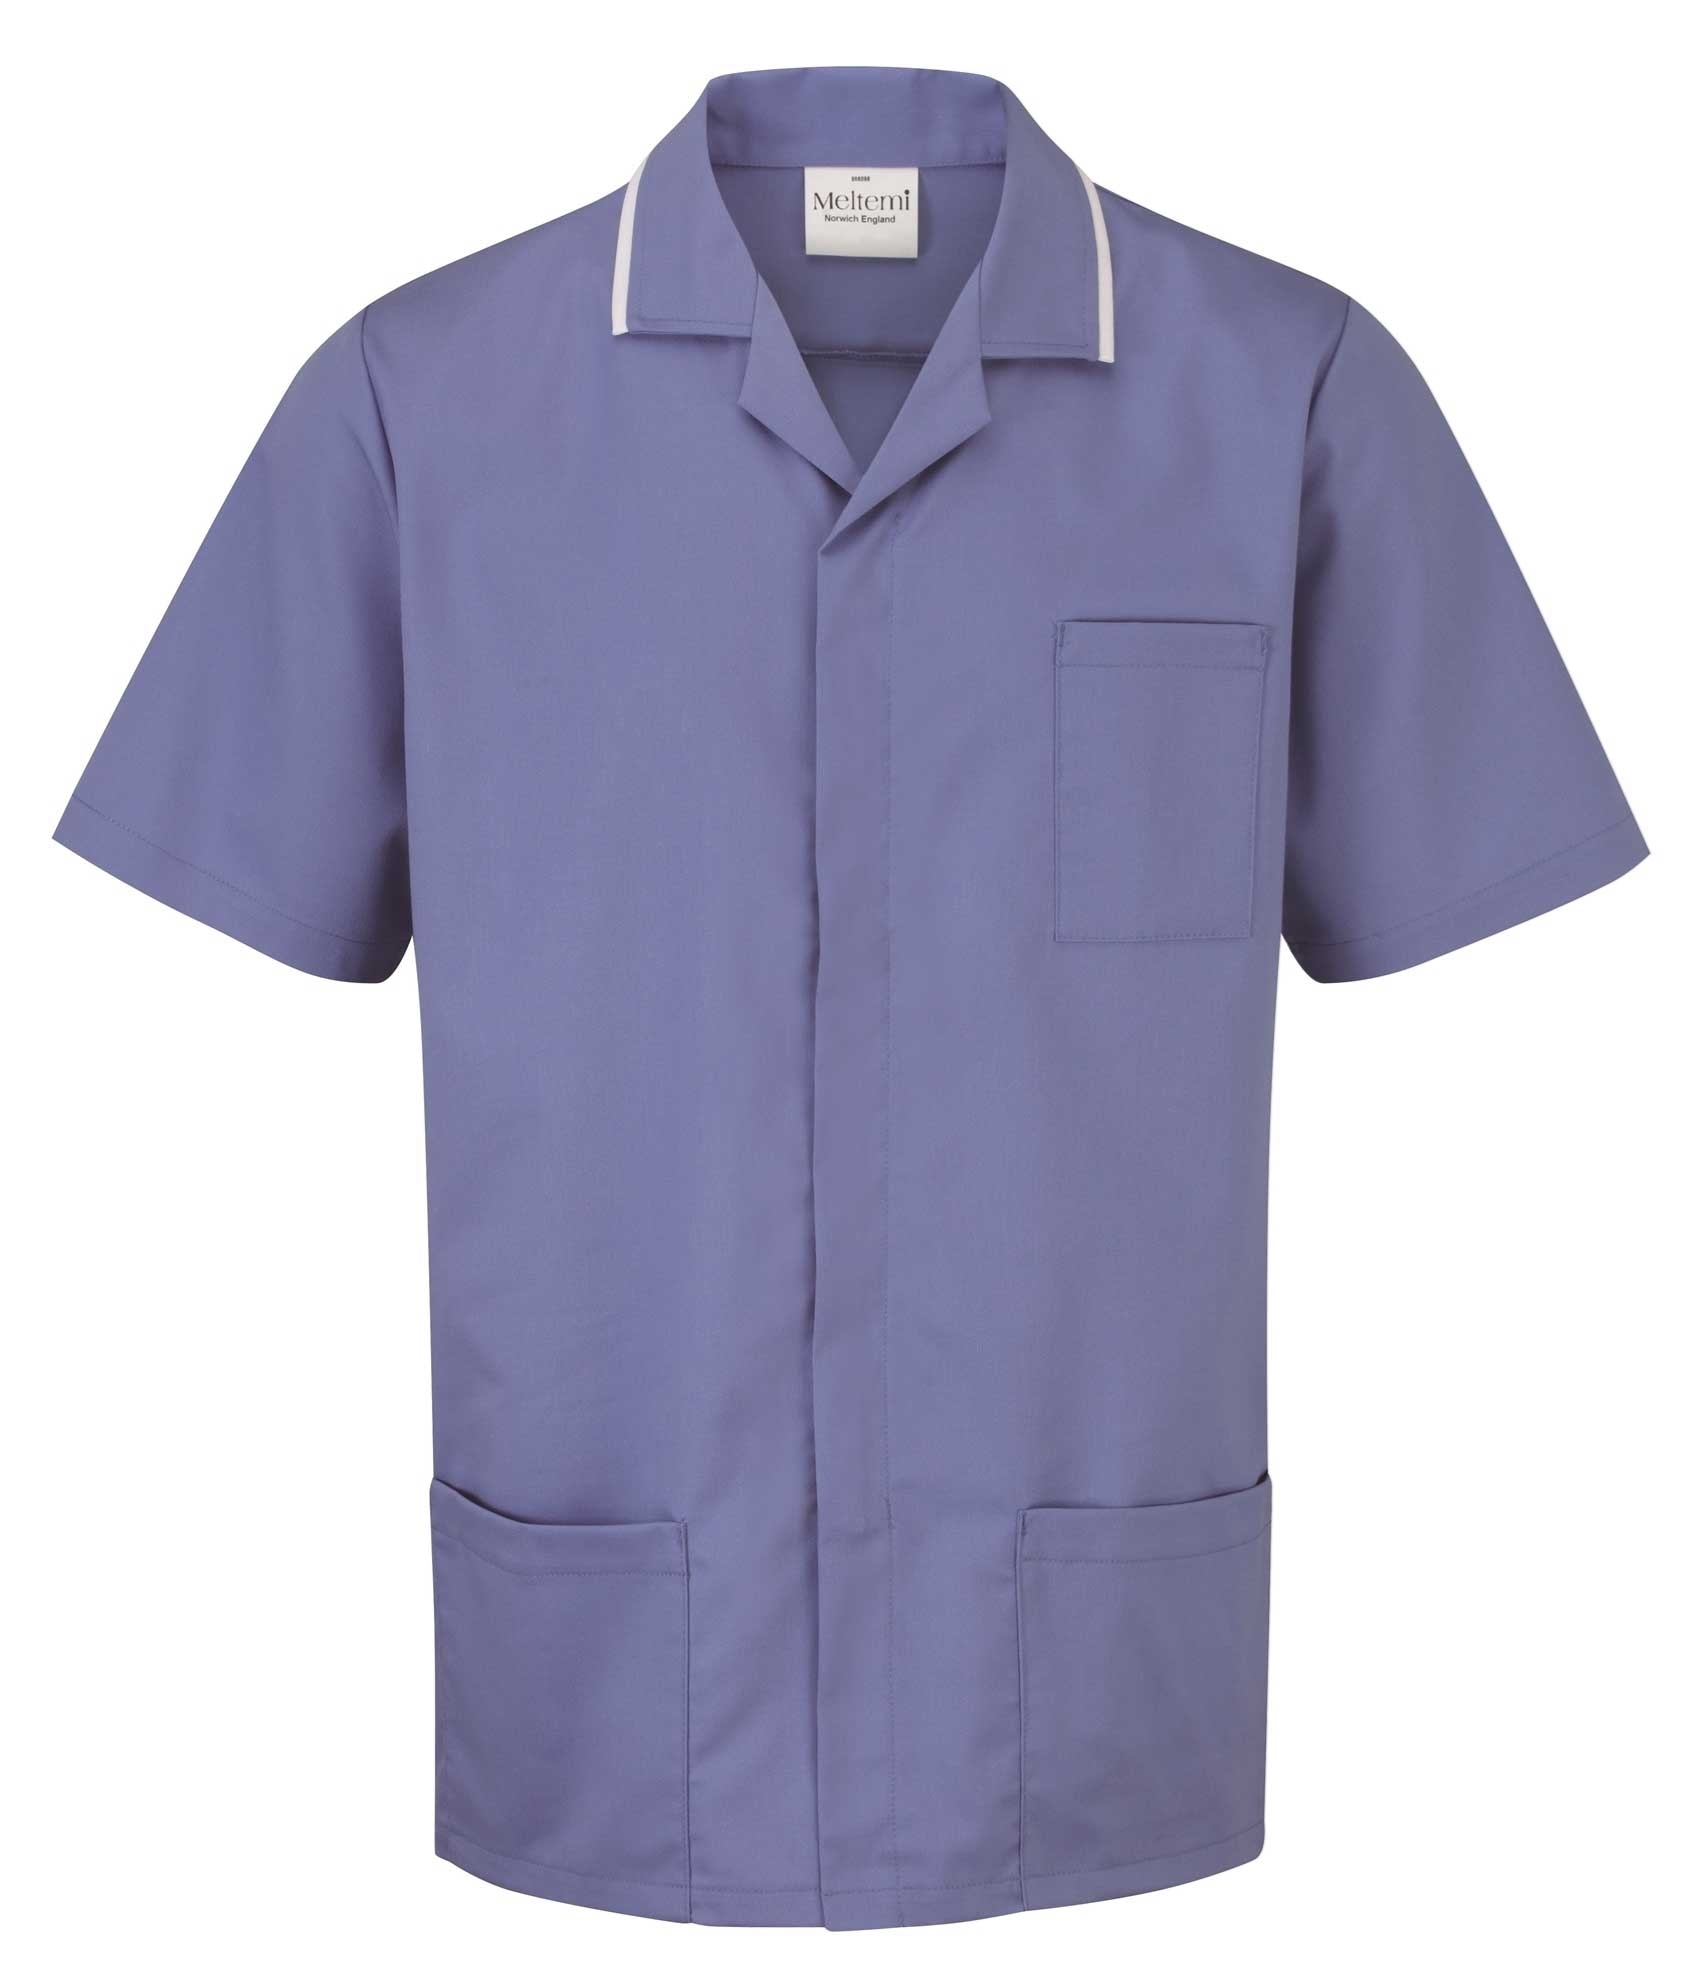 Picture of Advantage Front Fastening Tunic - Metro Blue/White